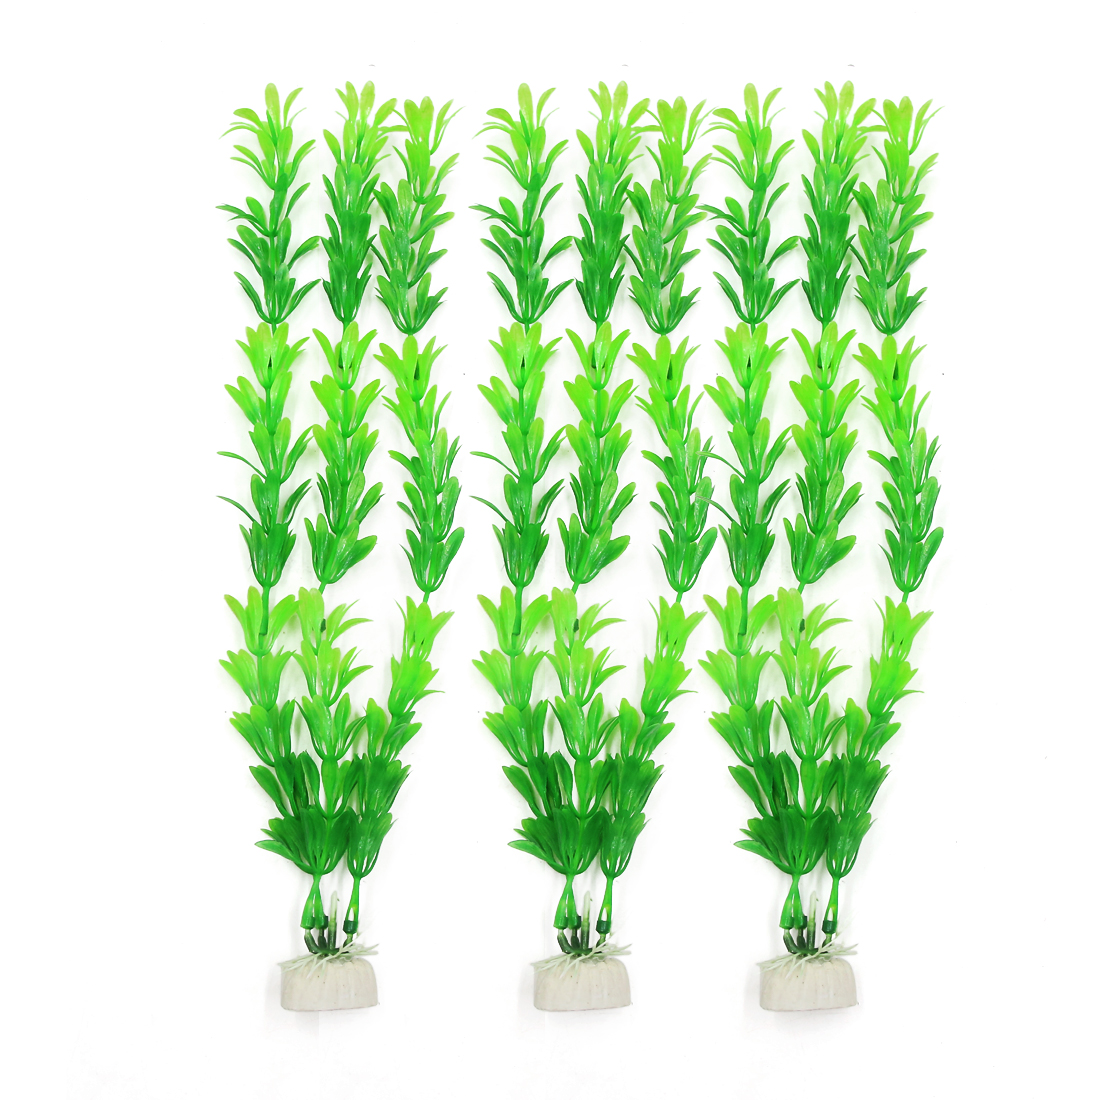 Aqua Landscape 3 Pcs Green Artificial Rotala Rotundifolia Plant for Betta Tank